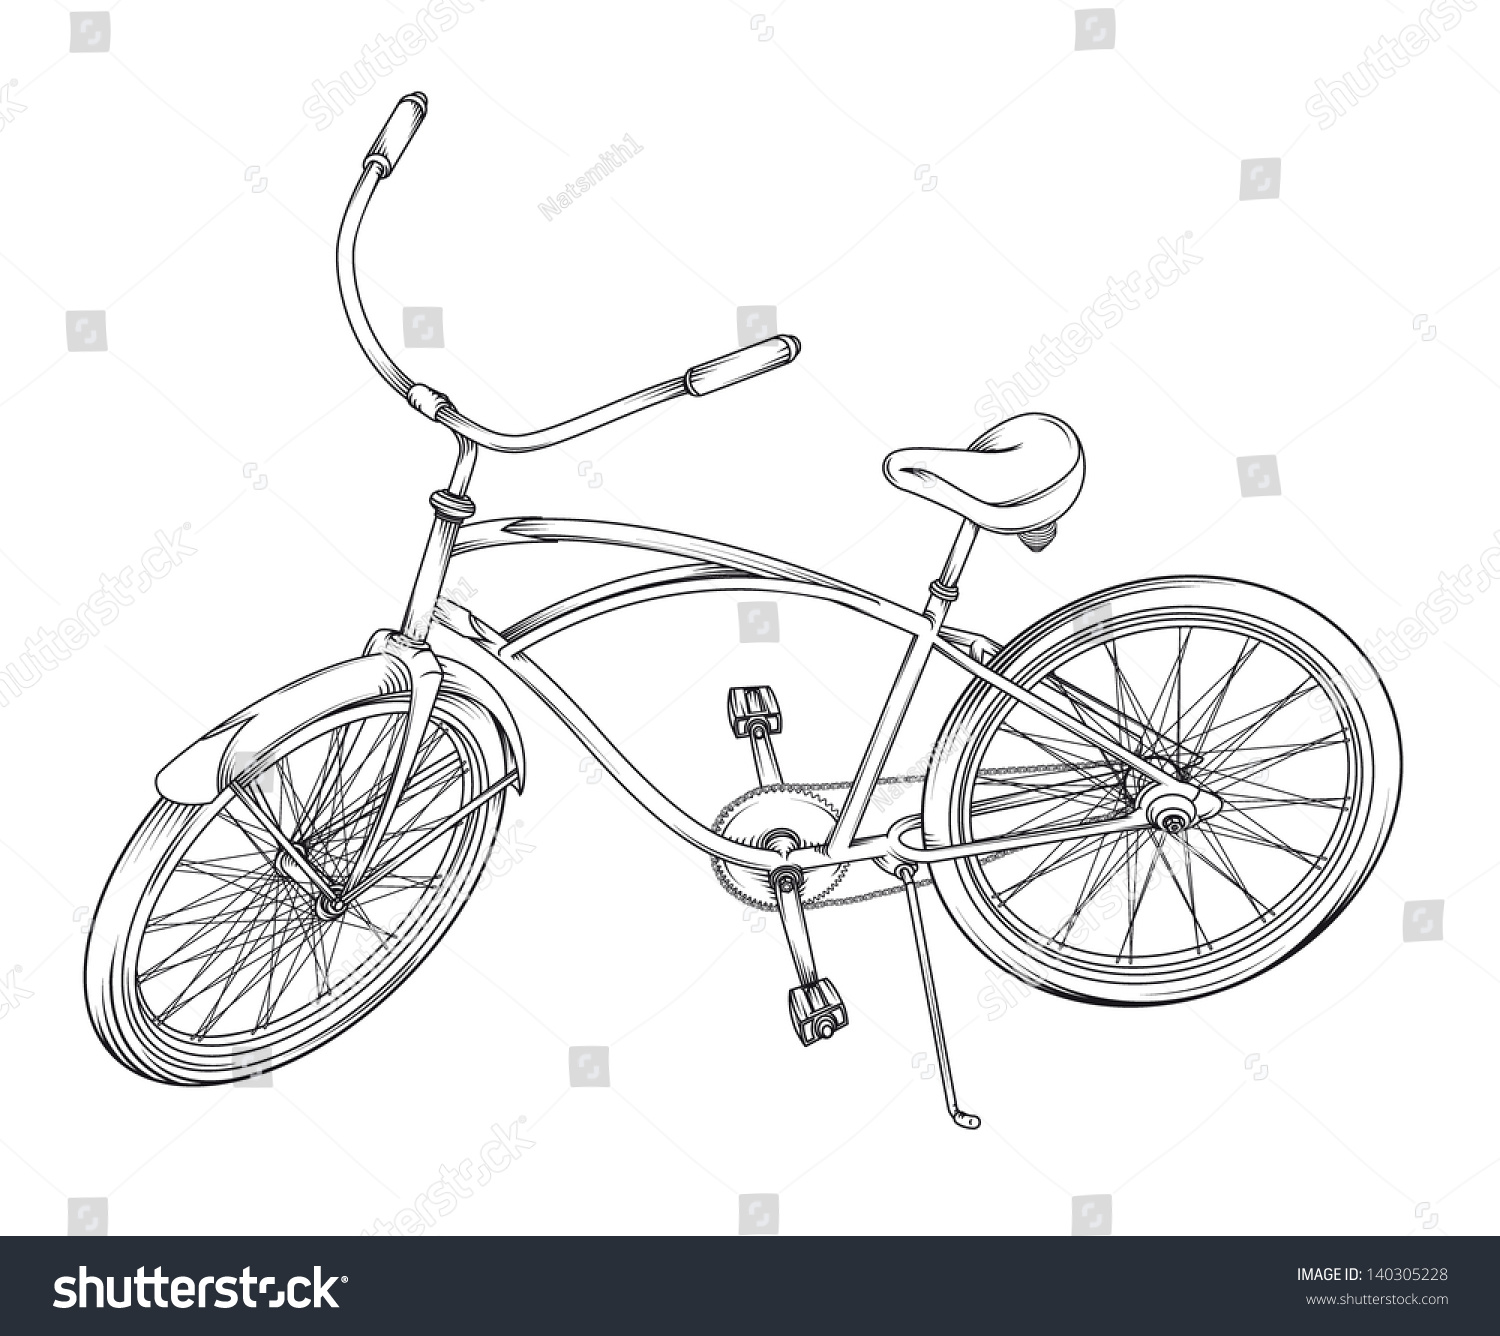 Easy Drawing Bicycle How To Draw A Bicycle Chaz Hutton Medium